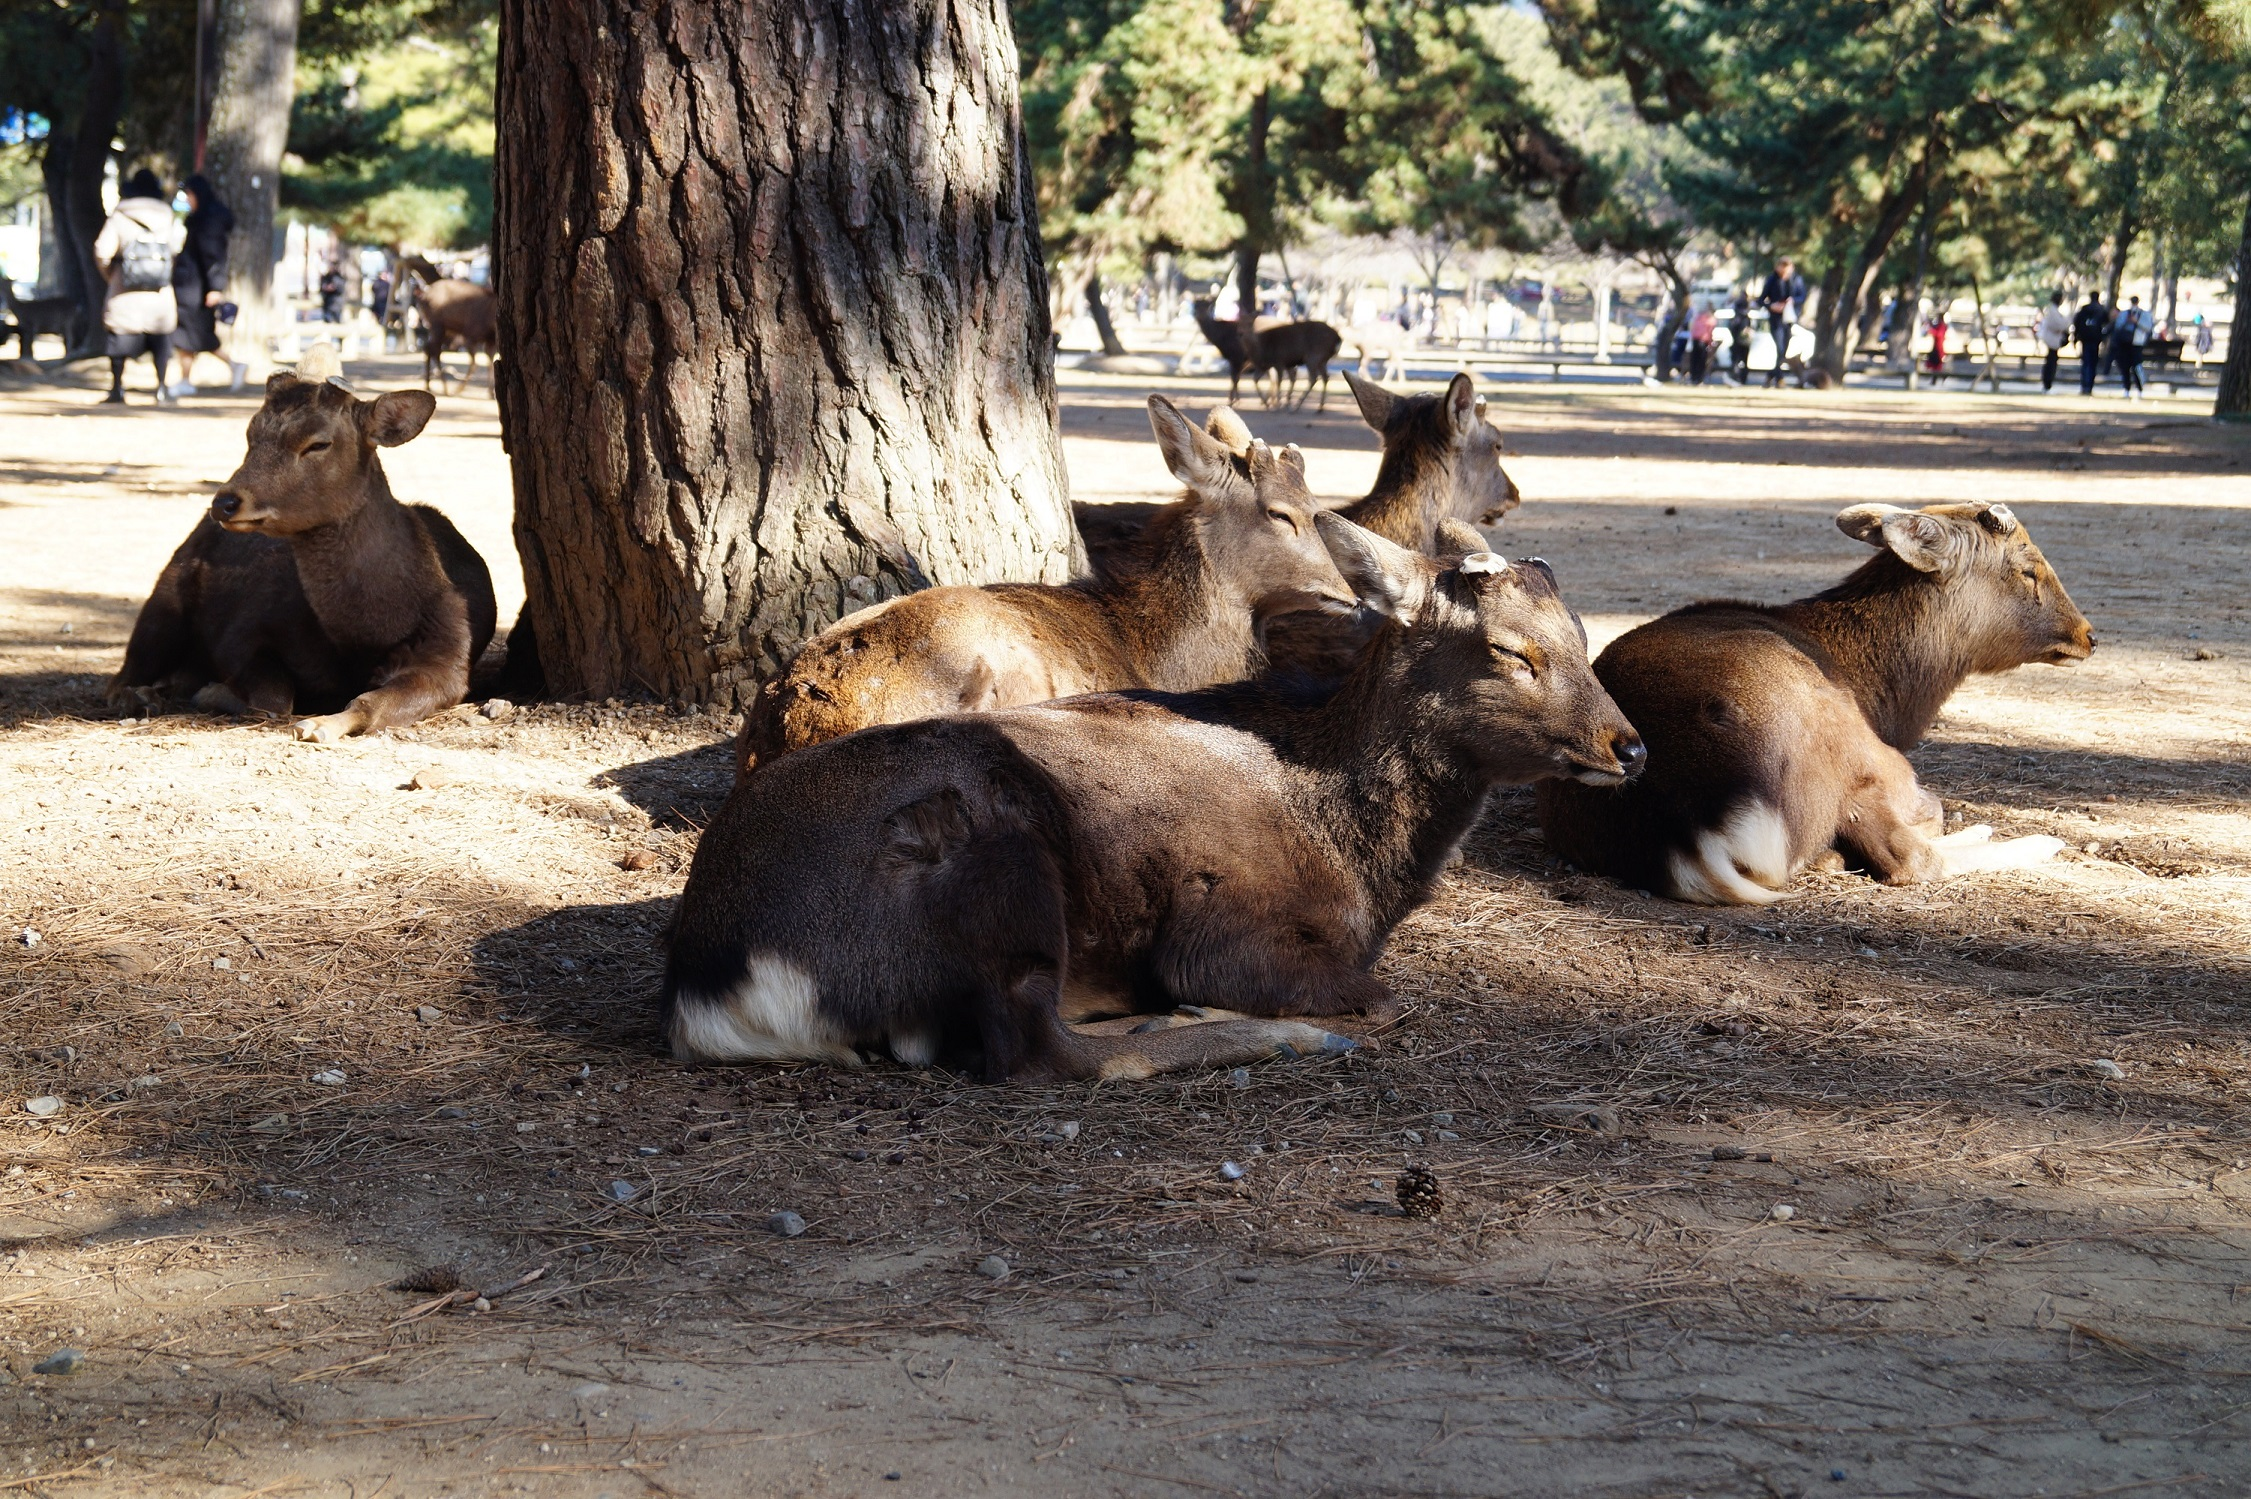 Nara Parque de Nara - Nara Park and the Sacred Deer of Japan